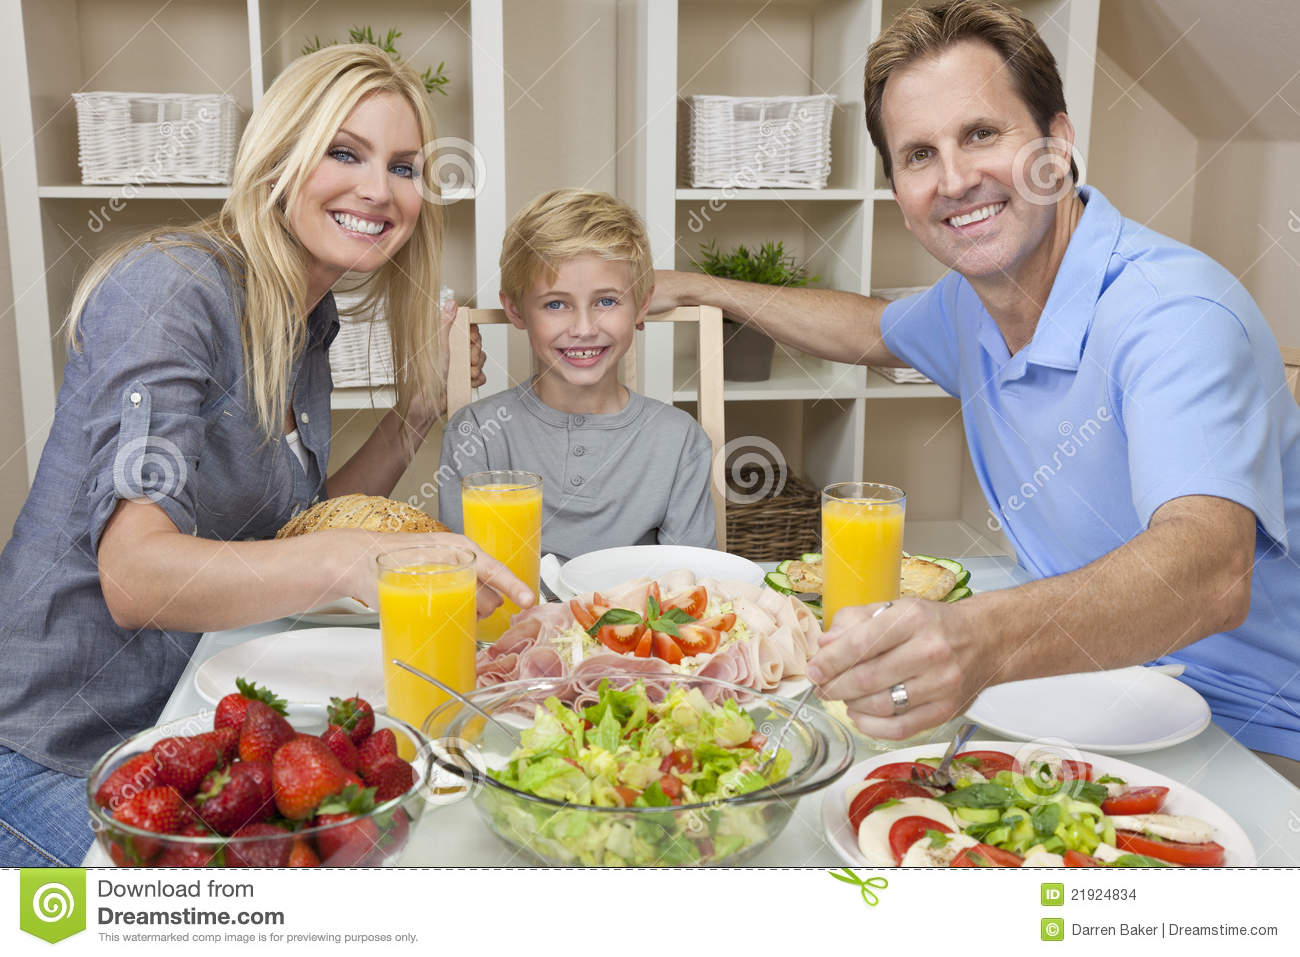 Dining Table With Food family eating healthy food salad dining table stock photos, images